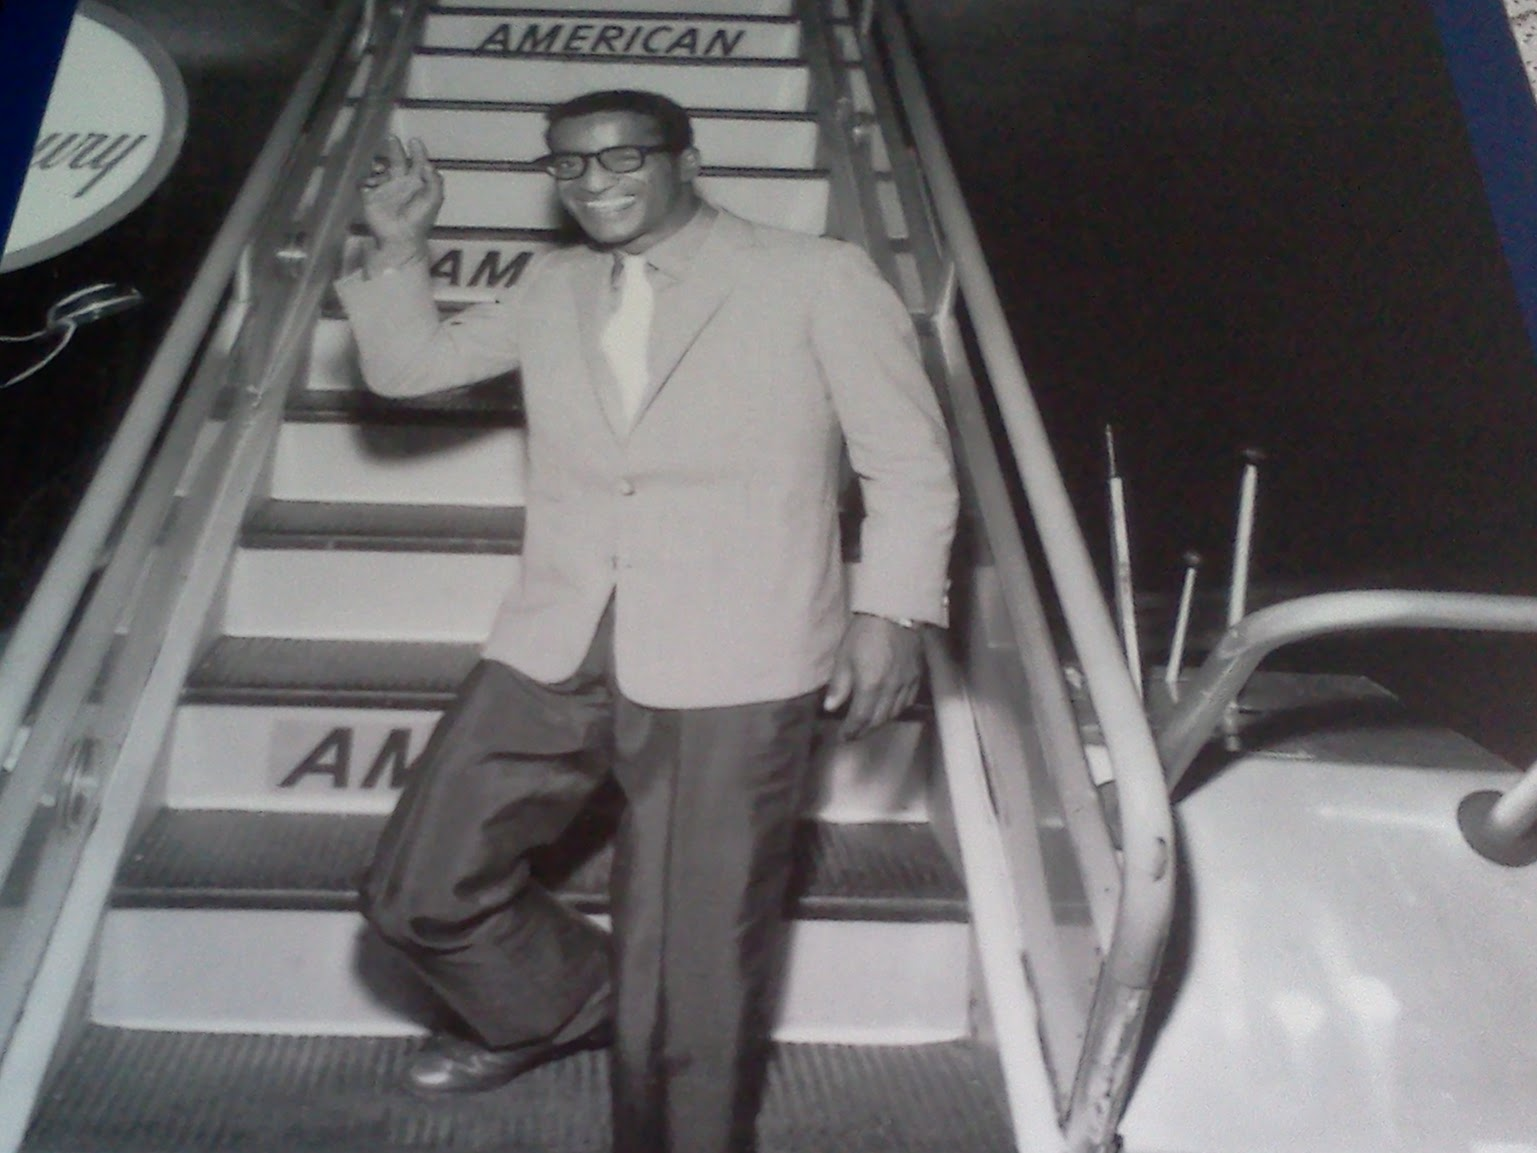 Sammy Davis Jr. flew on American Airlines C.R. Smith Museum